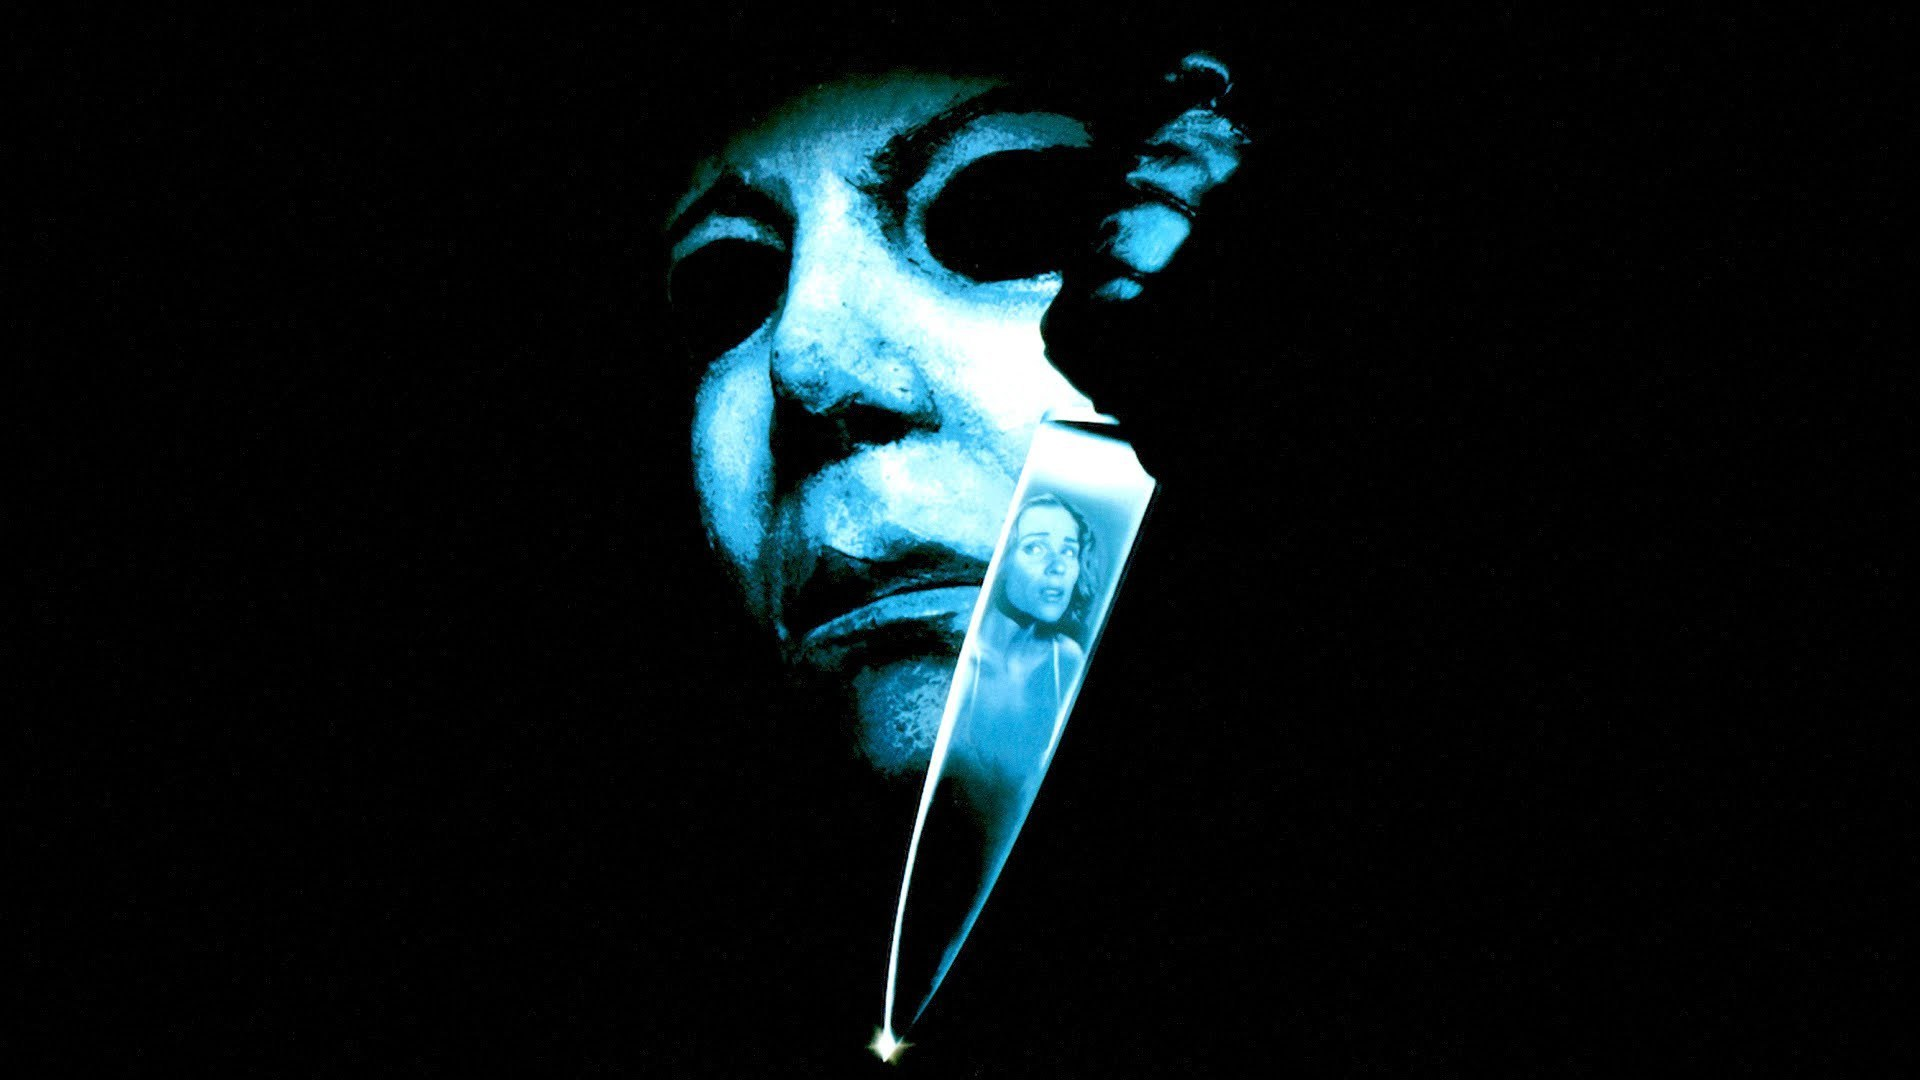 1920x1080-px-michael-myers-Full-HD-Backgrounds-by-Gregson-Butler-wallpaper-wpc900949